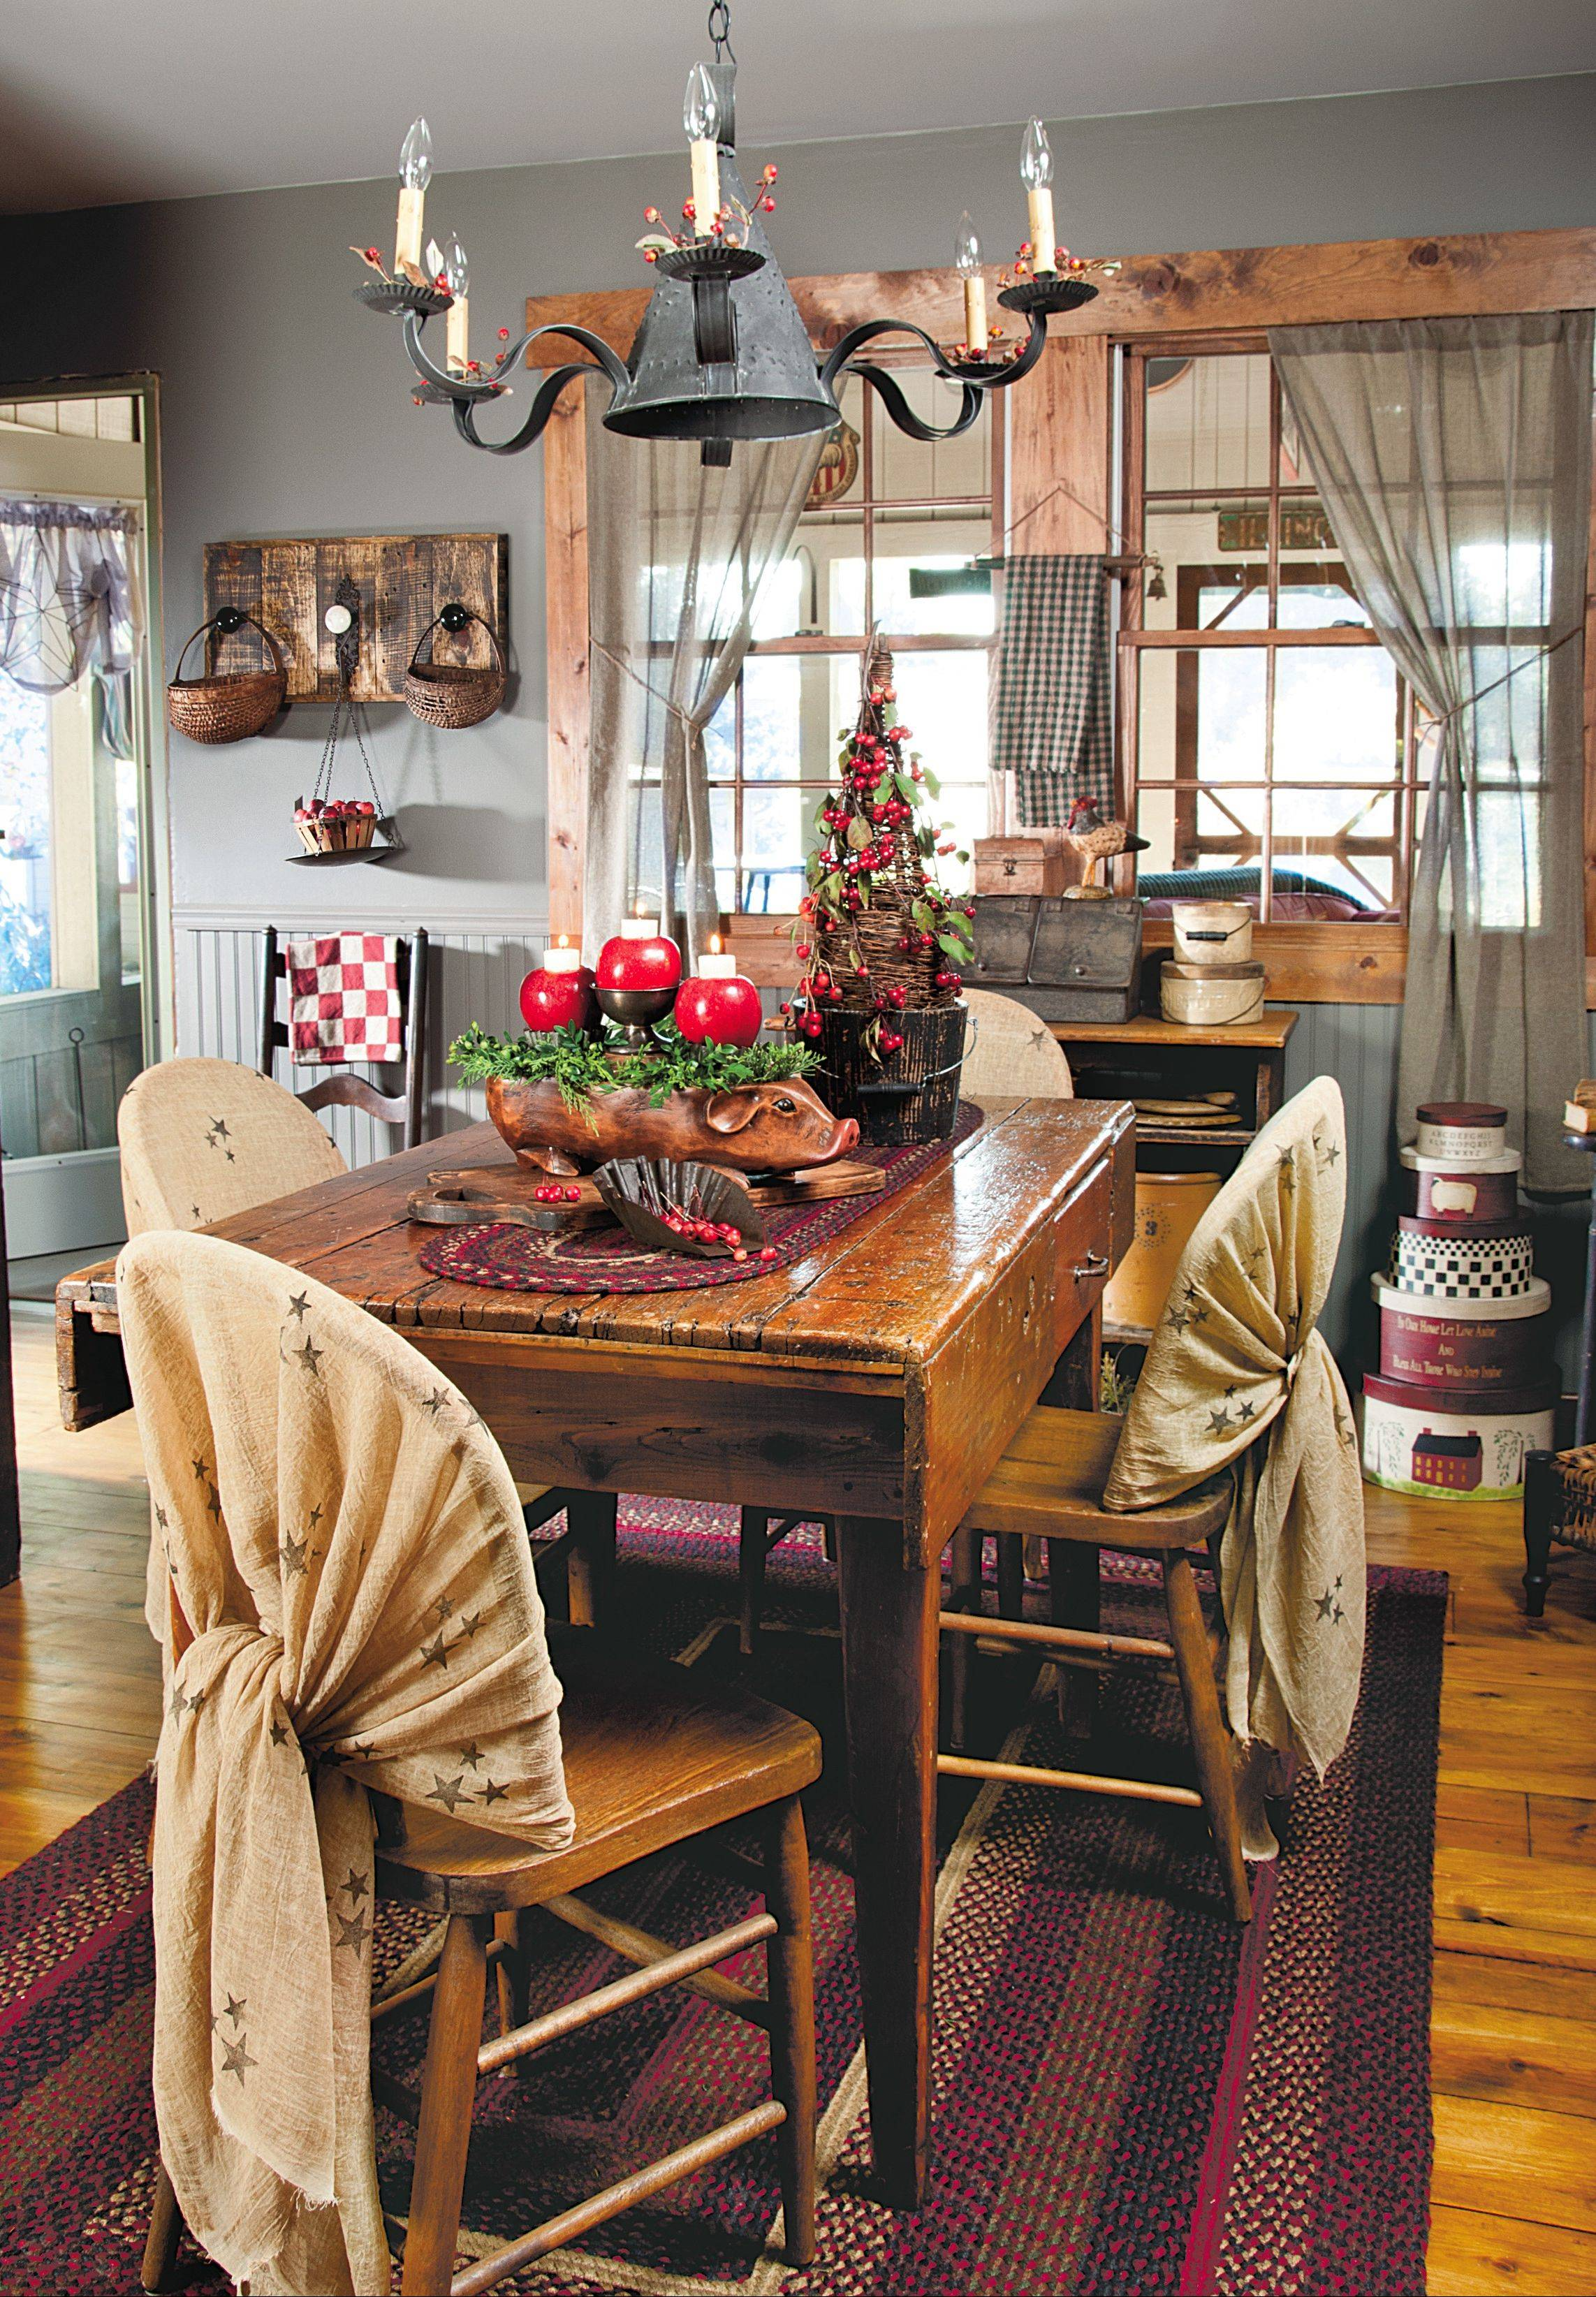 Touches of red appear on the table courtesy of apples hollowed out to hold votive candles and a scale pan holding apples near the back door repeats the tablescape's motif, while gauzy curtains let in light and gently frame rustic furnishings.